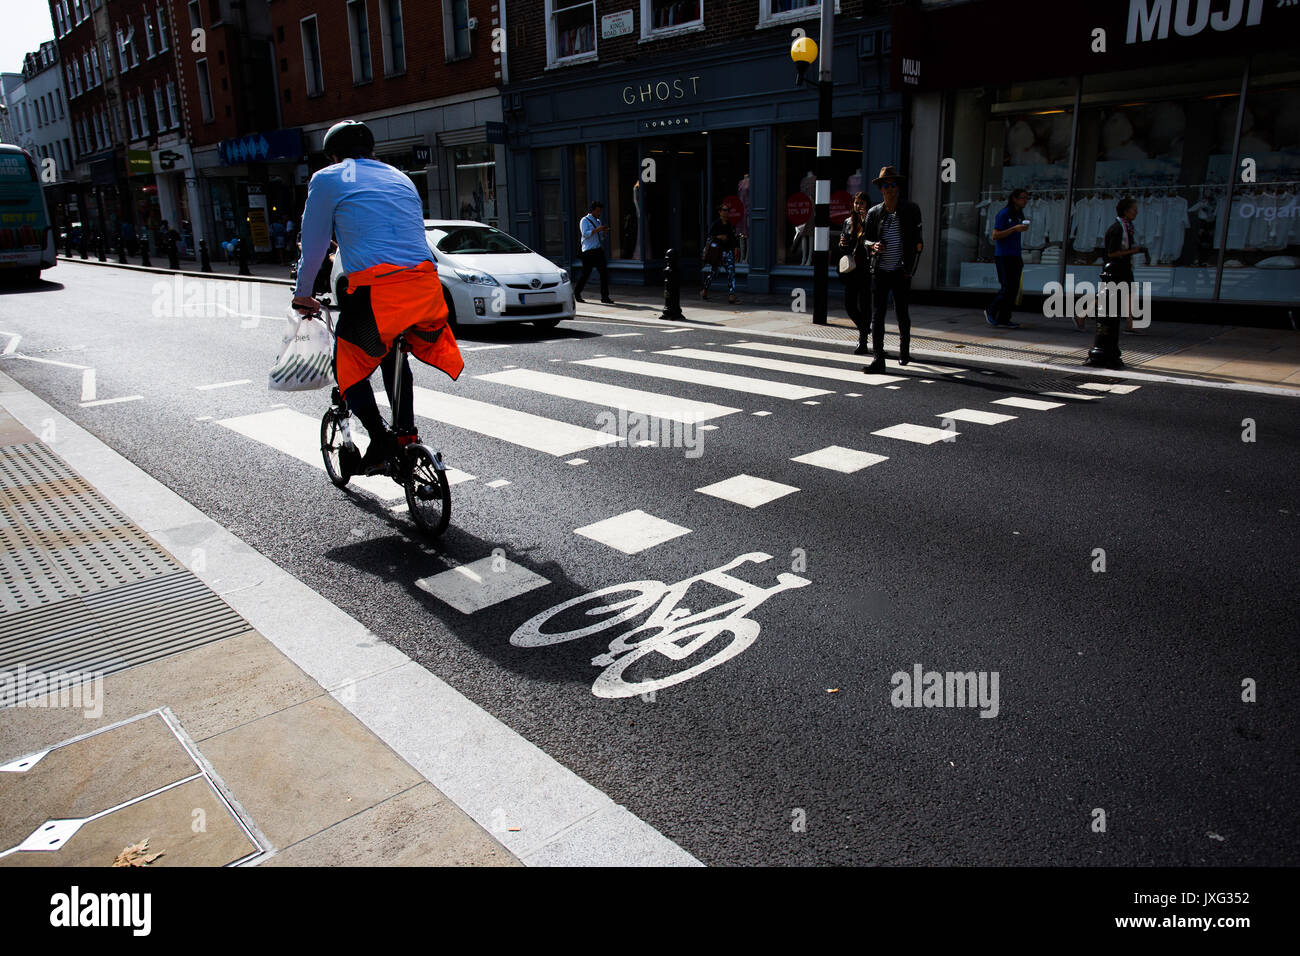 A London worker cycling over zebra crossing whilst car waits for pedestrian on Kings Road, Sloane Square, London. Stock Photo